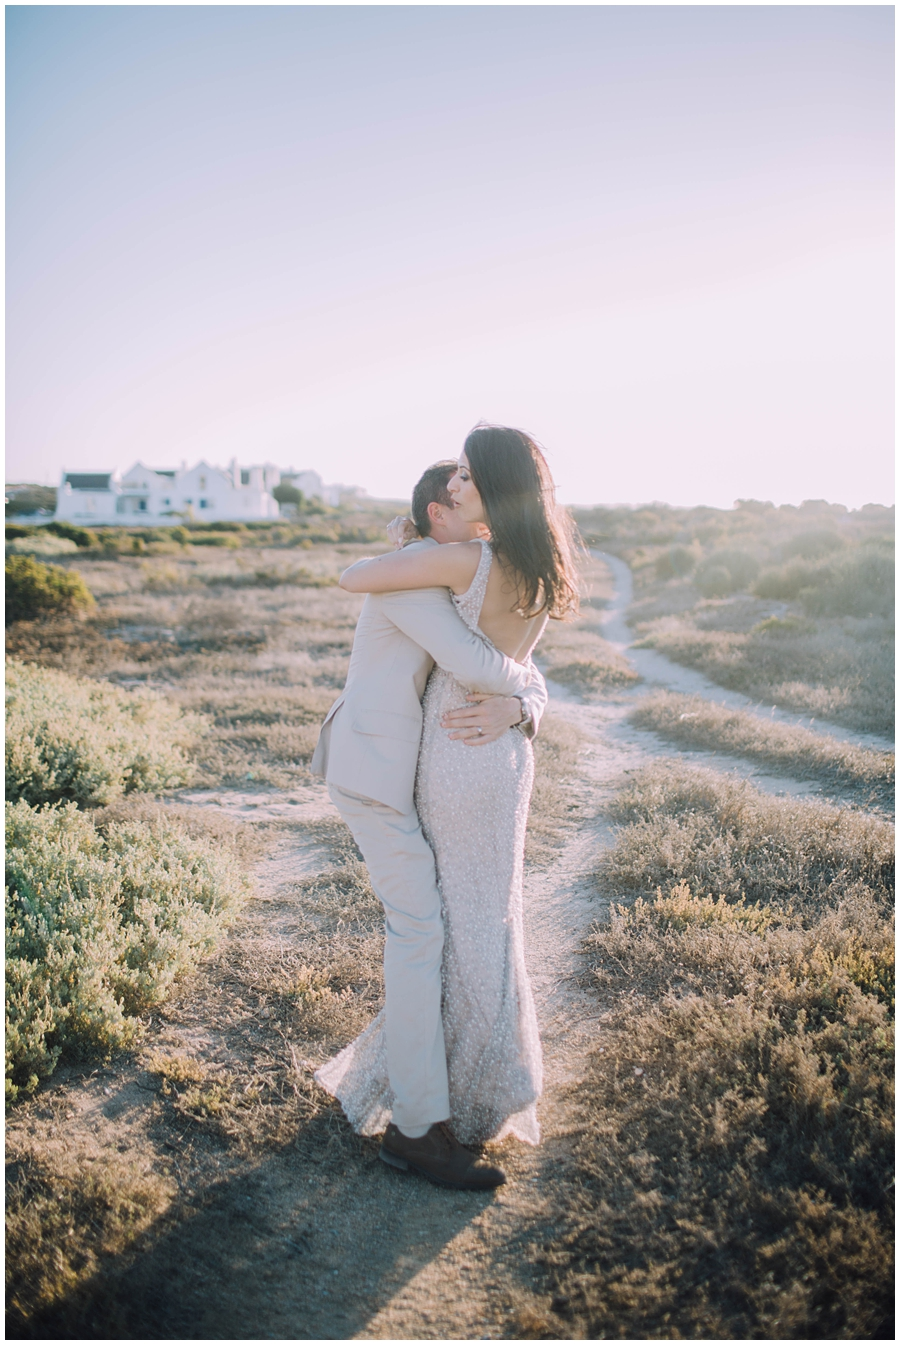 Ronel Kruger Cape Town Wedding and Lifestyle Photographer_0403.jpg